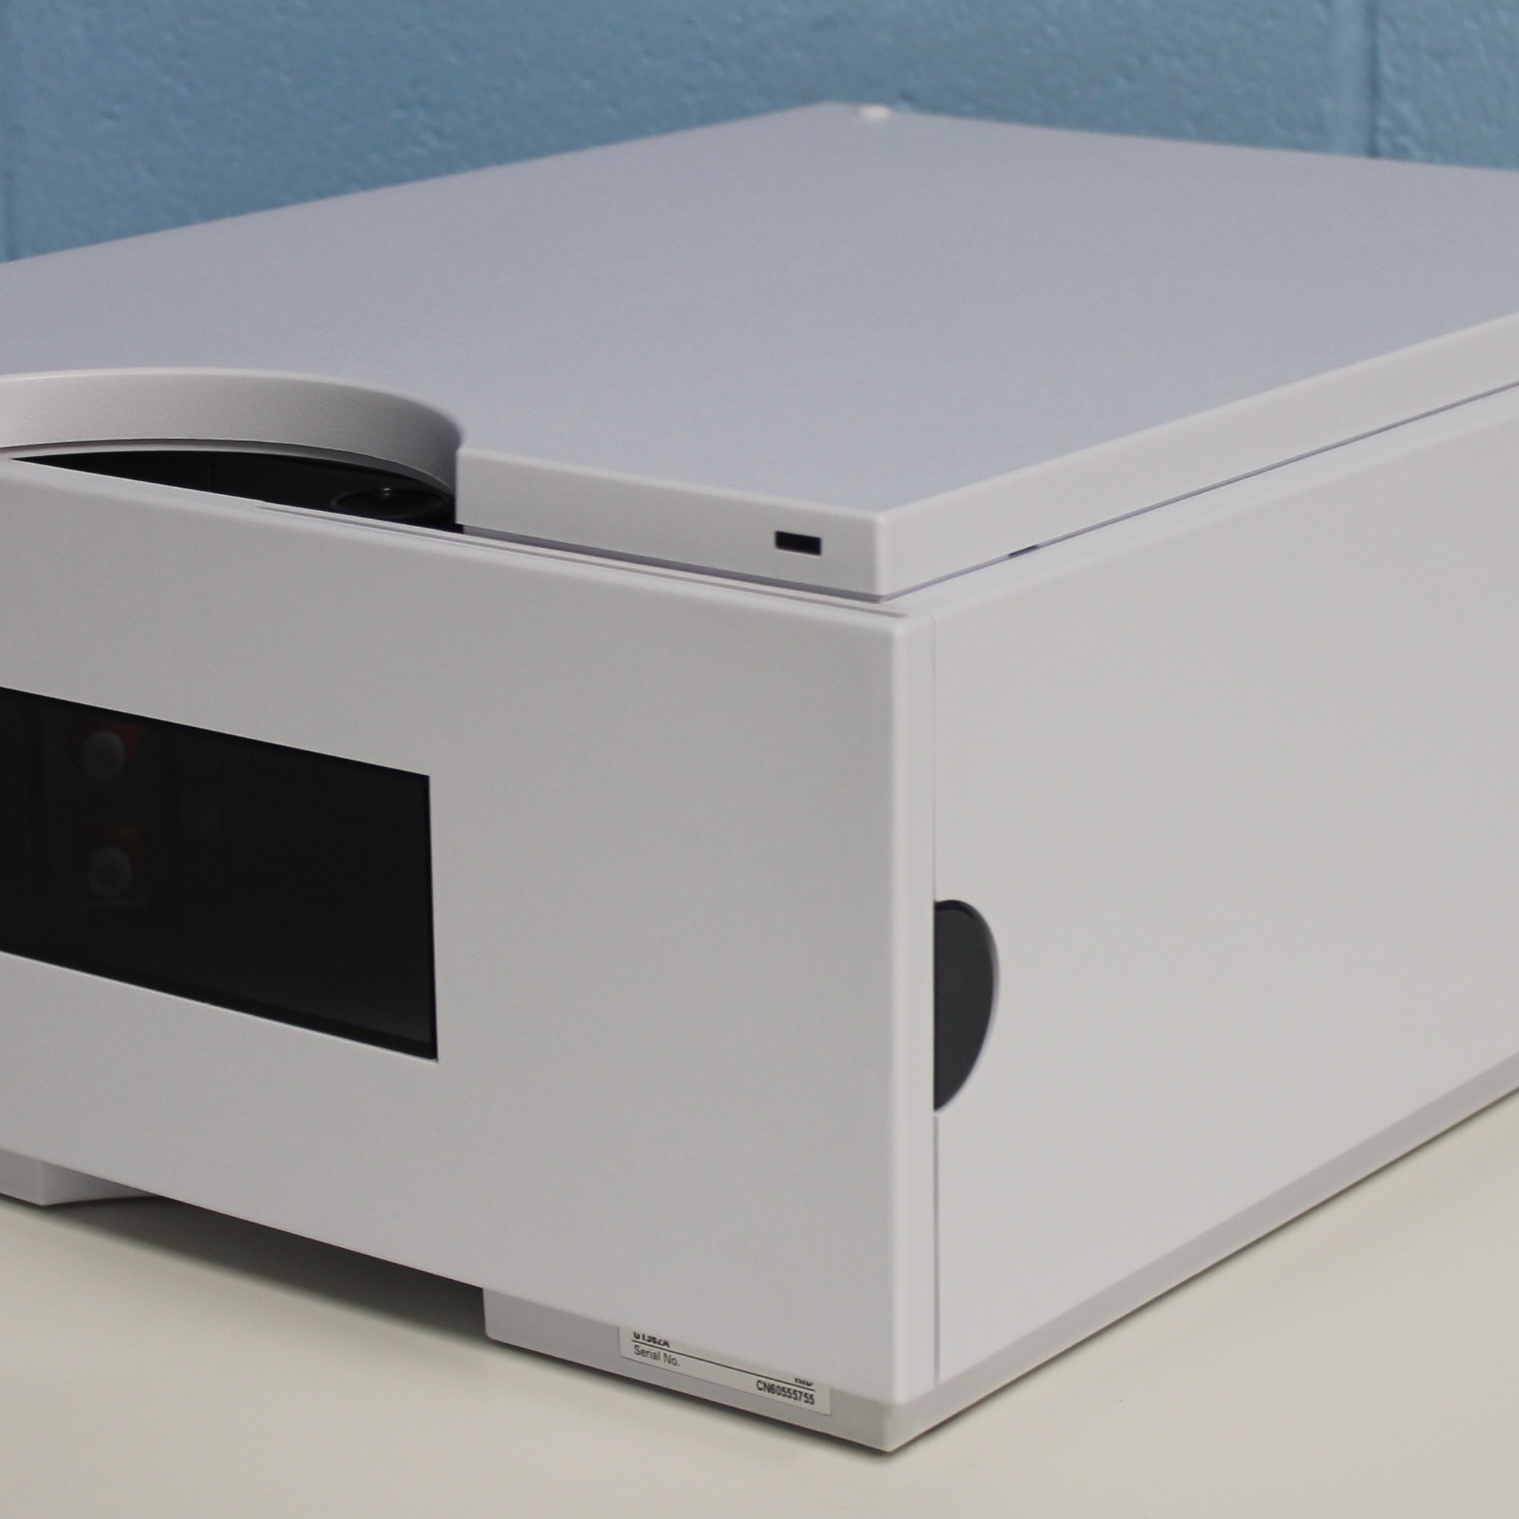 Agilent Technologies 1200 Series G1362A RID Refractive Index Detector Image